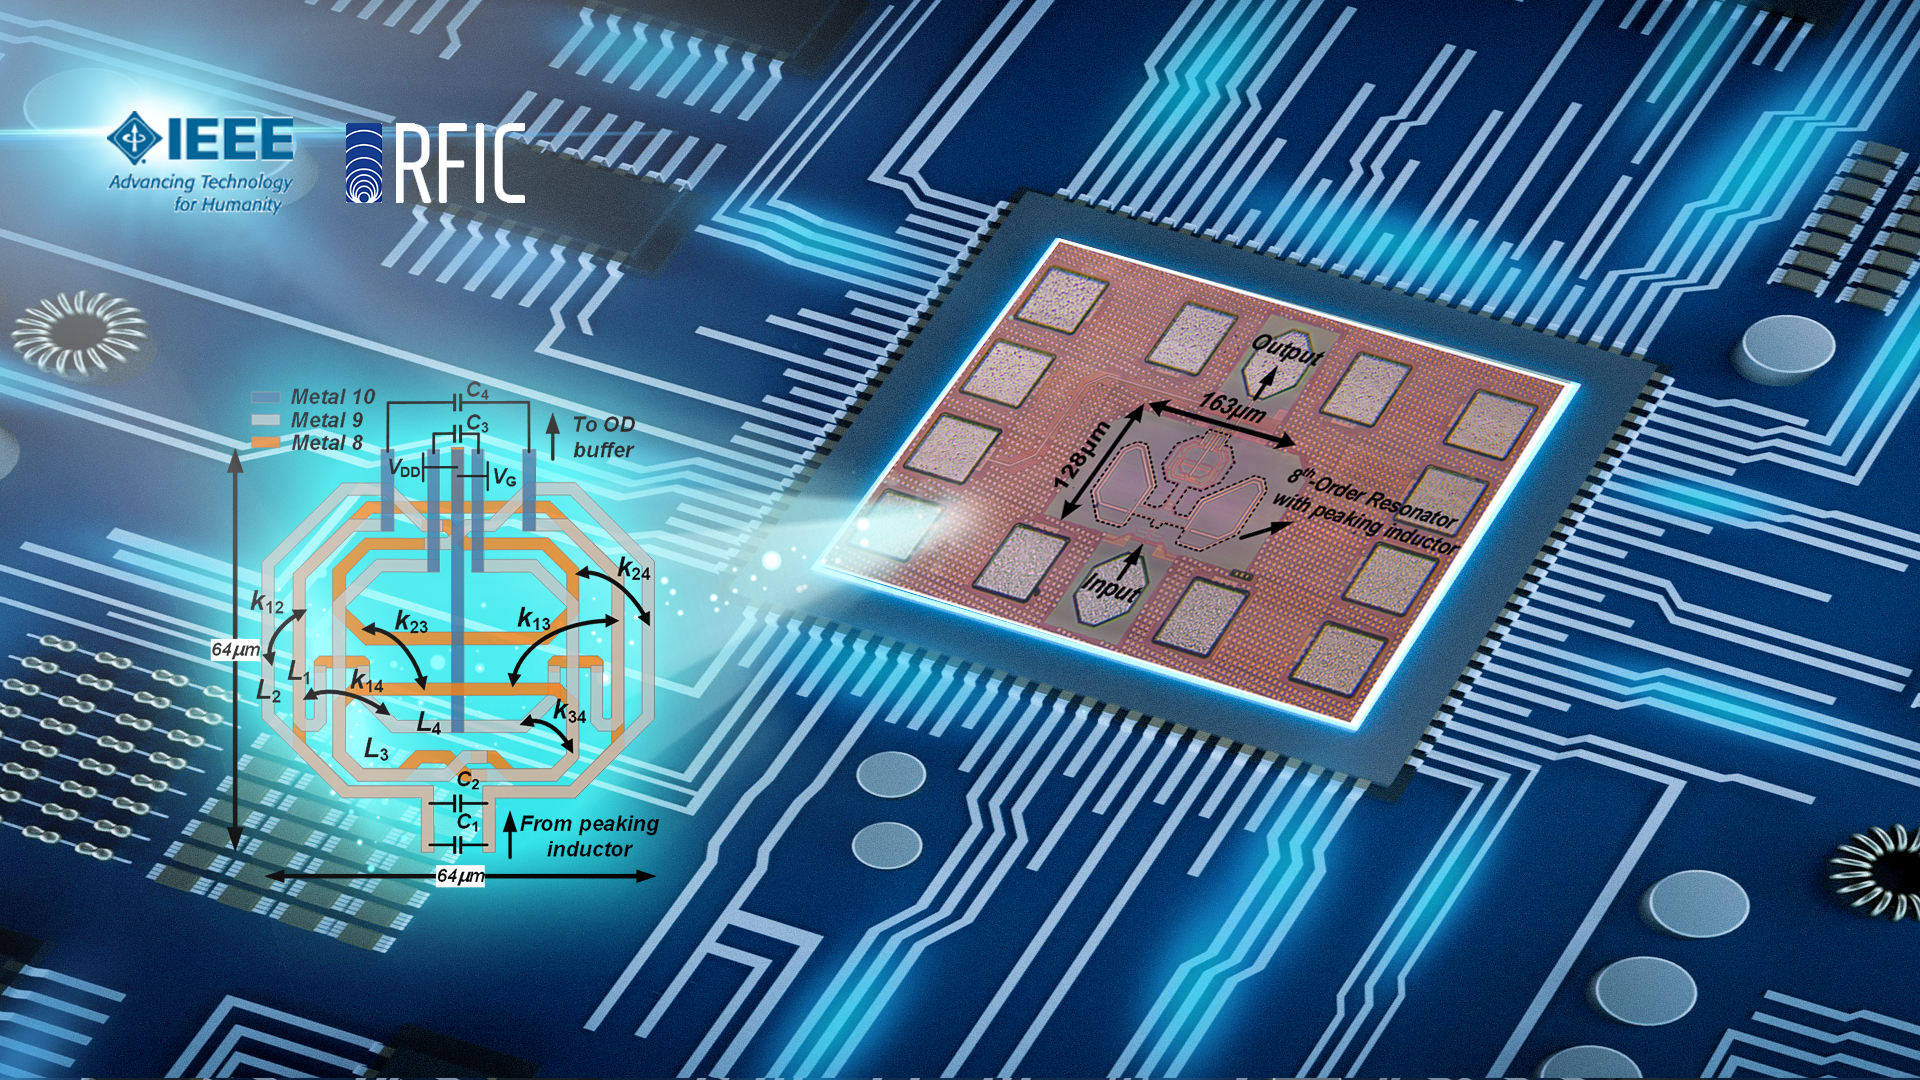 SUSTech Quan Pan's research group develops technique to improve high-frequency bands in 5G communication